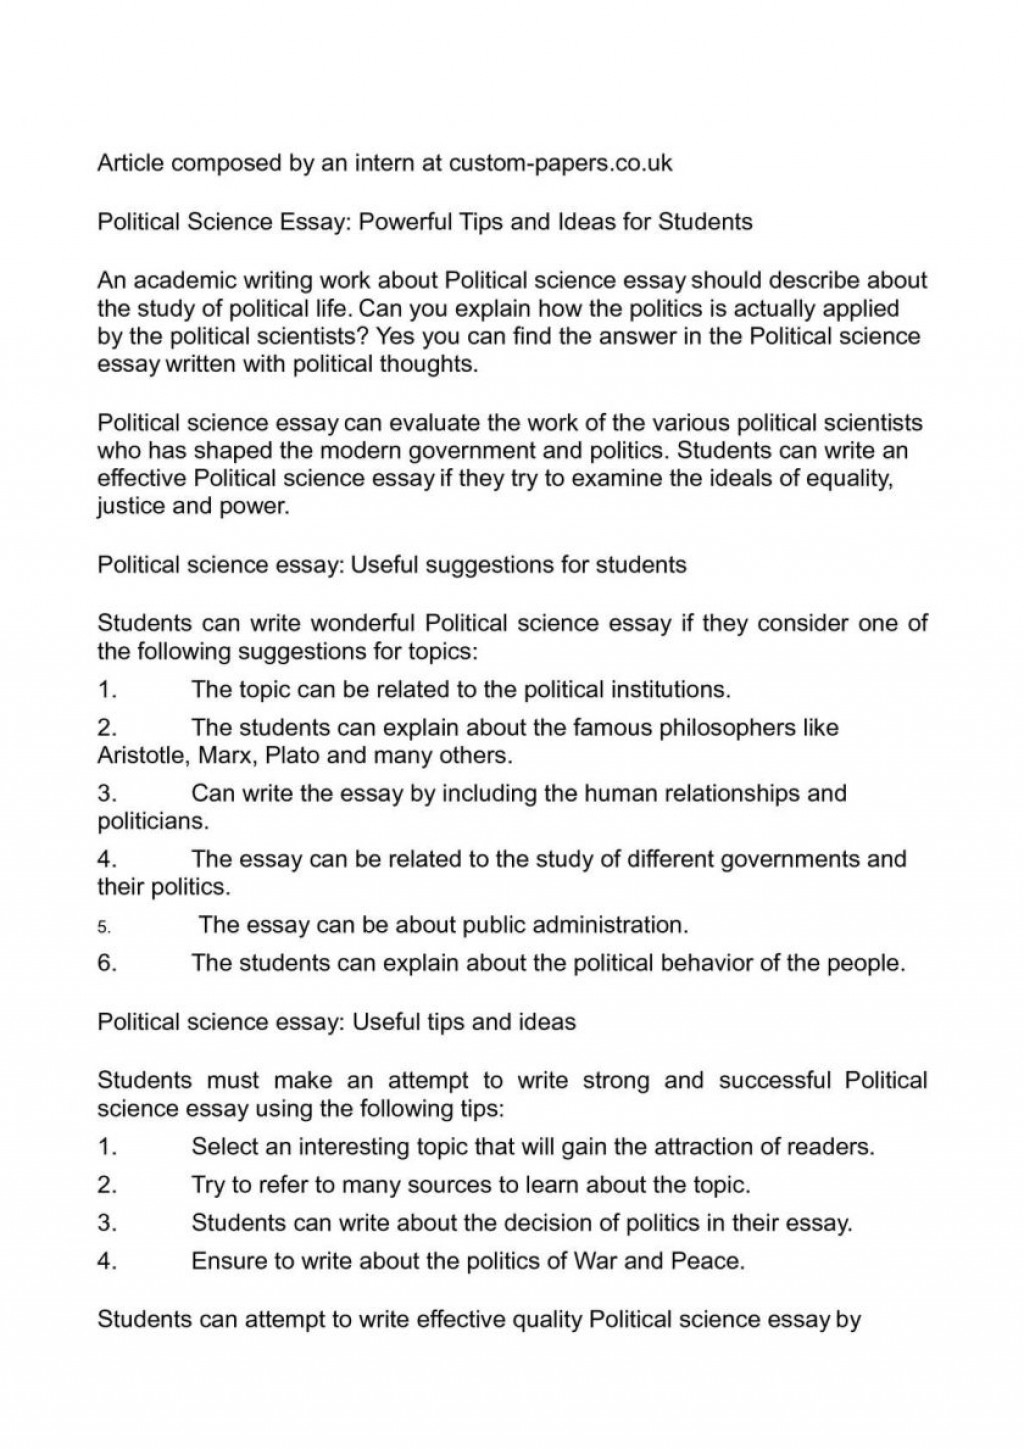 017 Essay Macbeth Ideas Science Argumentativecs Good Photo Easy To Write Abo About Research Paper Personal Descriptive Persuasive College Synthesis Informative Narrative 840x1189 Fearsome Topics A On Fun History Large